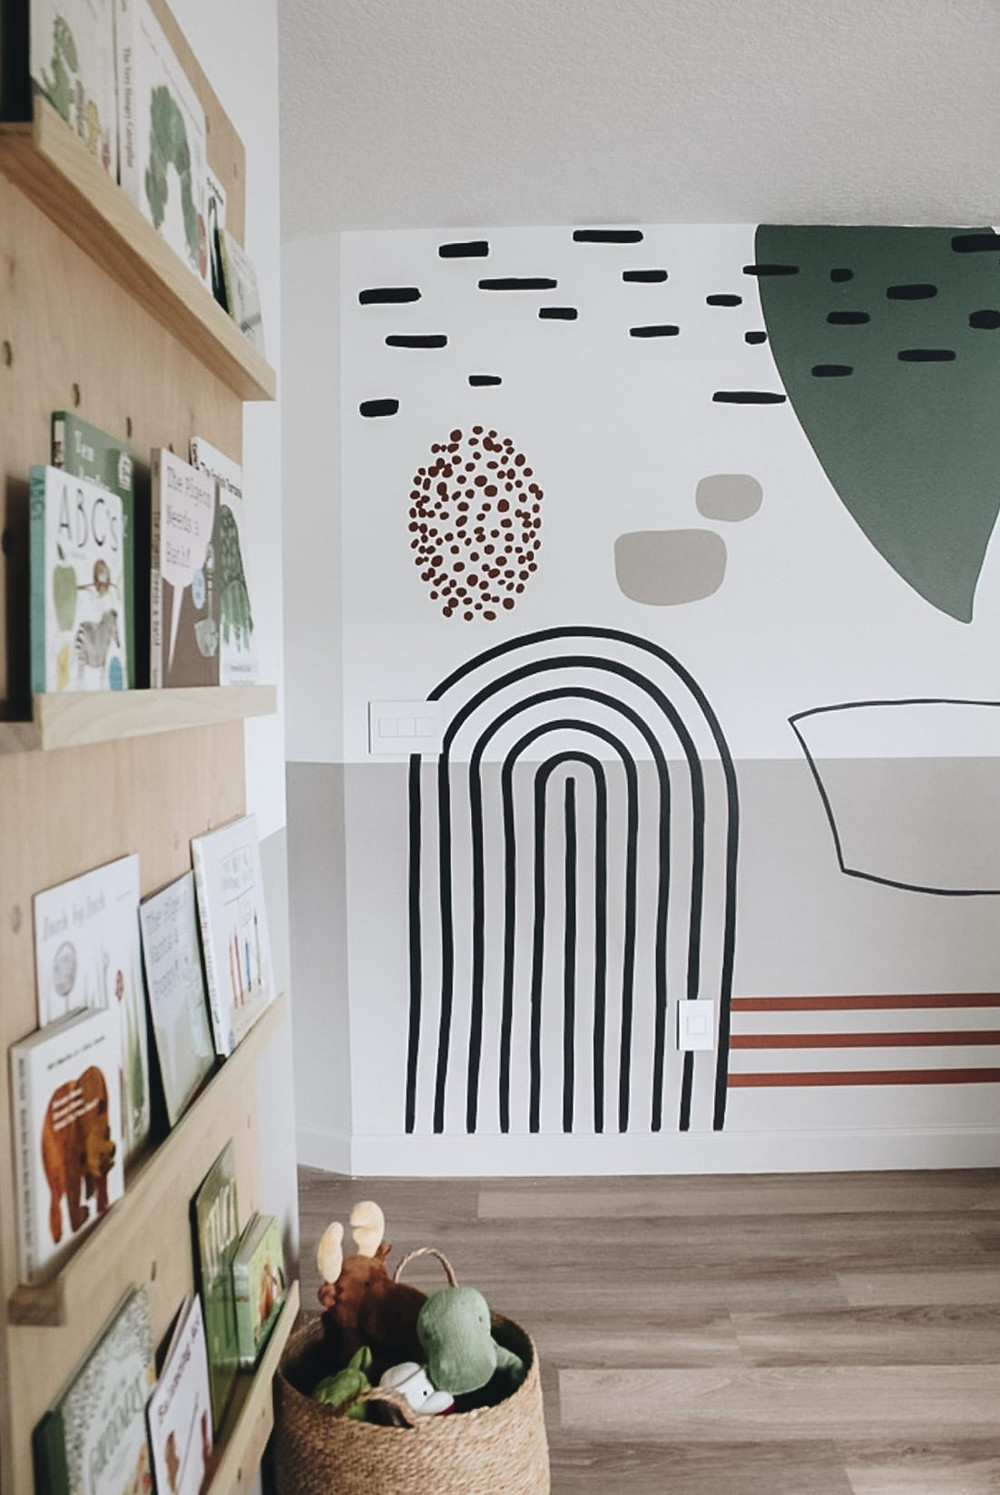 A hand painted wall mural idea for a children's playroom with simple wooden bookshelves and woven storage baskets below a bookshelf.